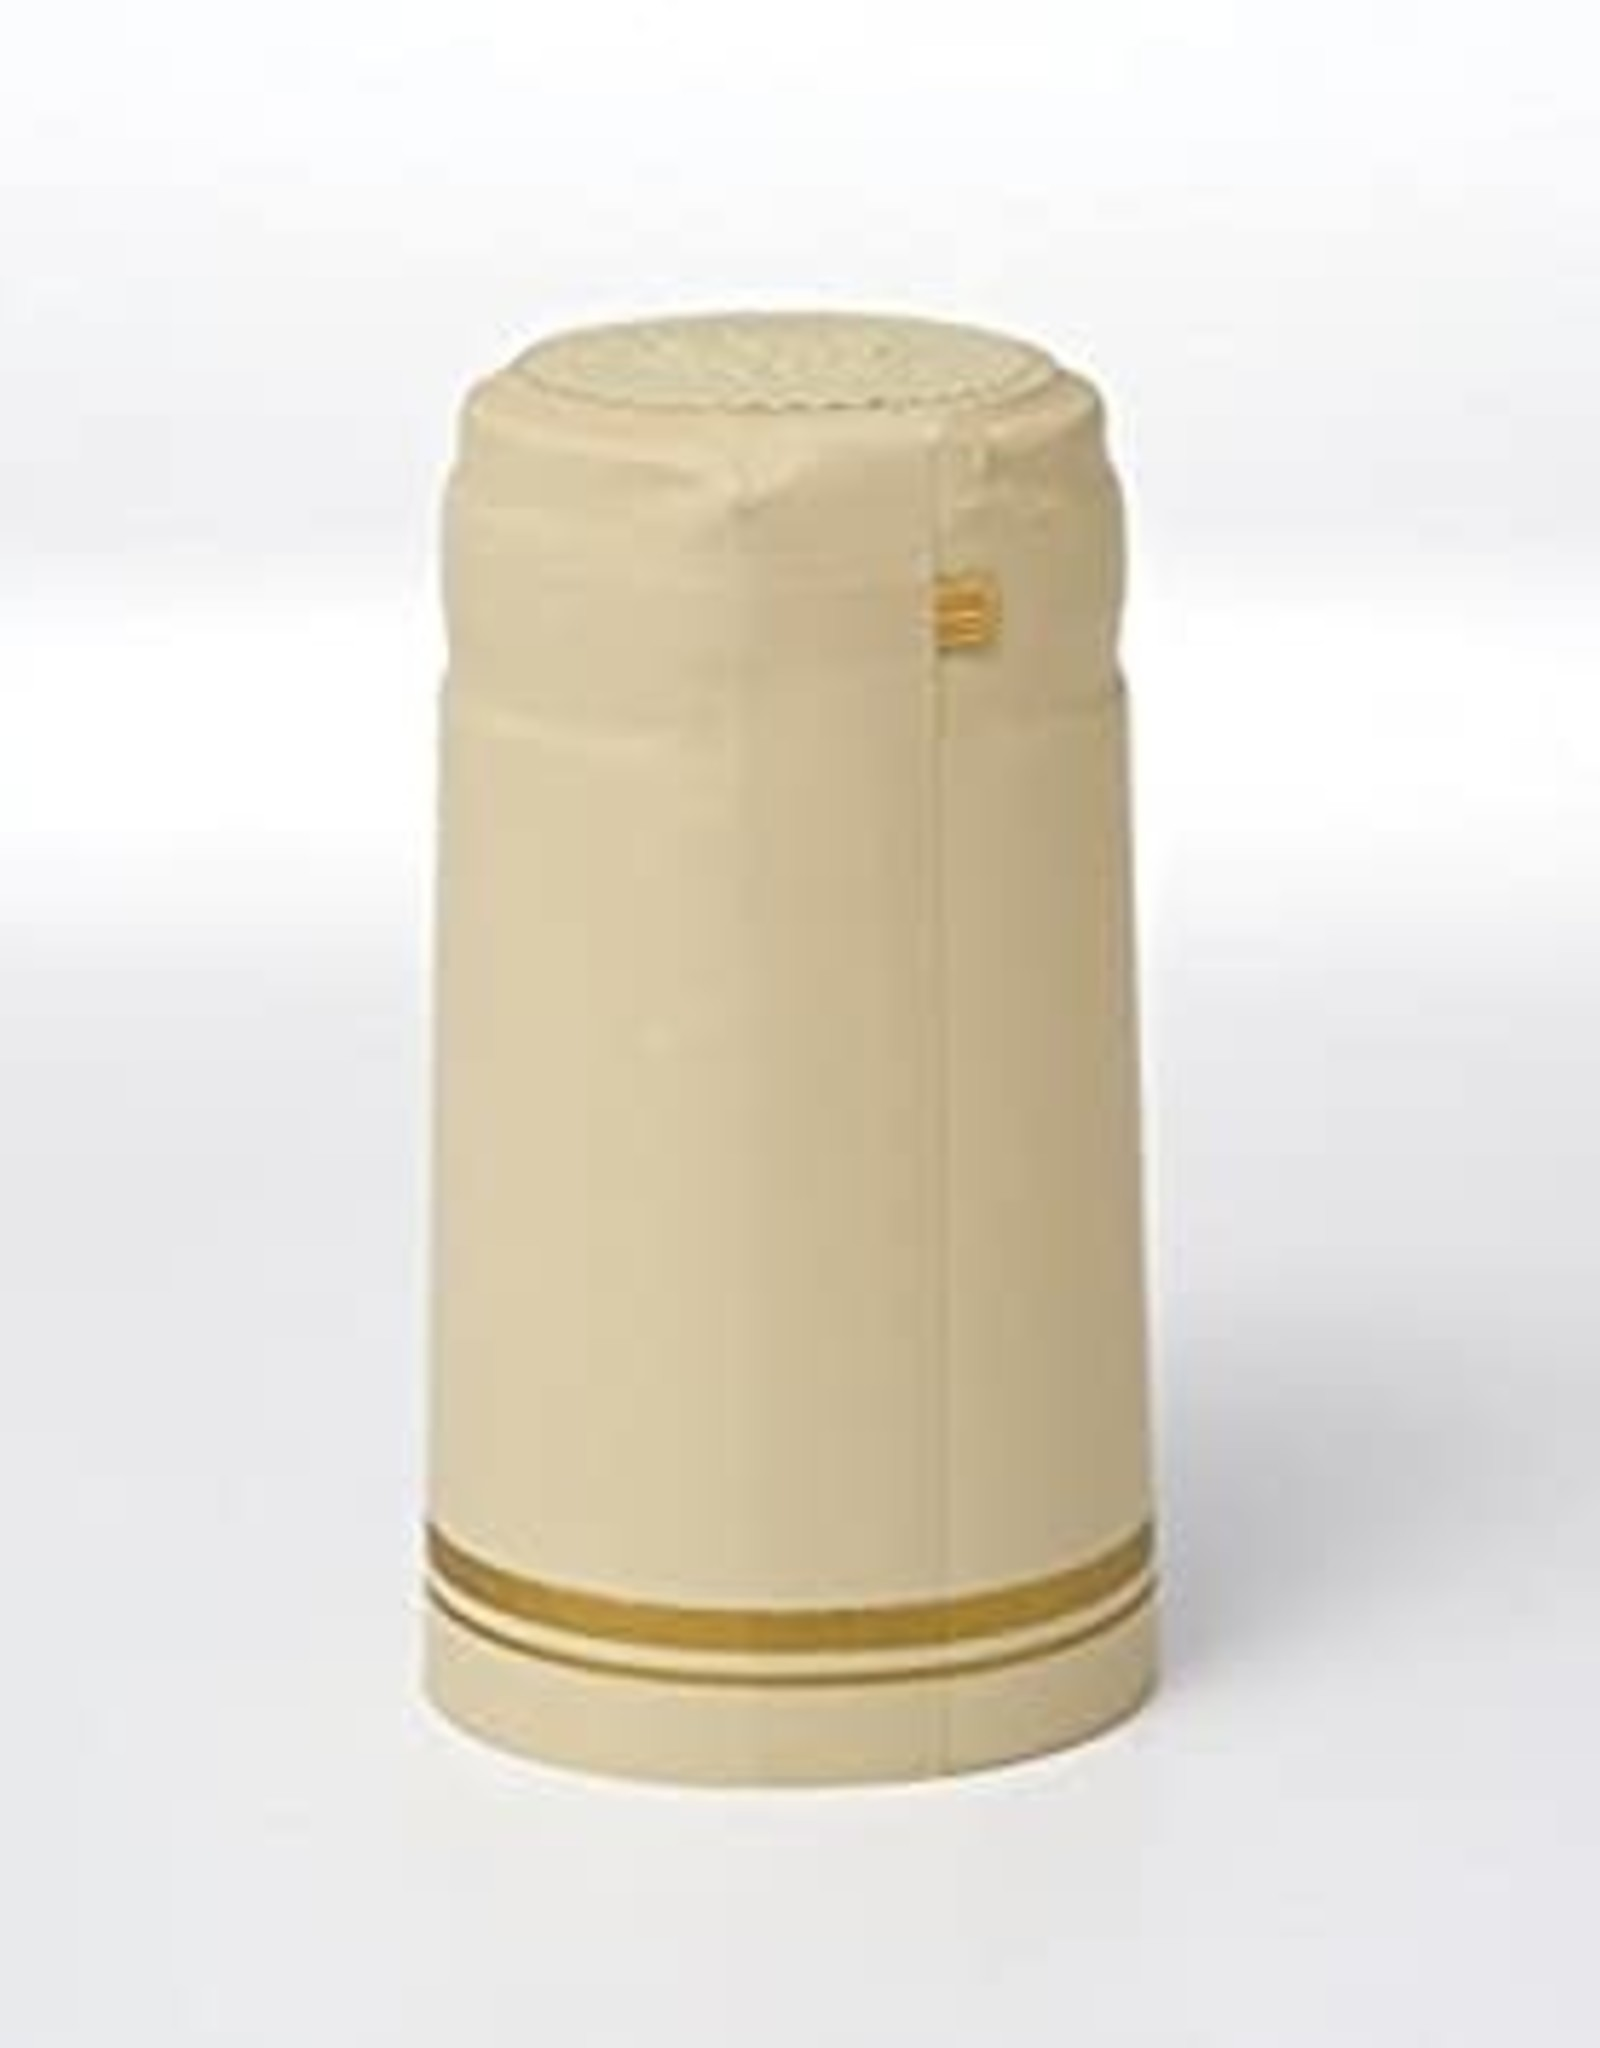 CREAM W/ 2 GOLD STRIPE PVC SHRINK CAPSULES 30 COUNT